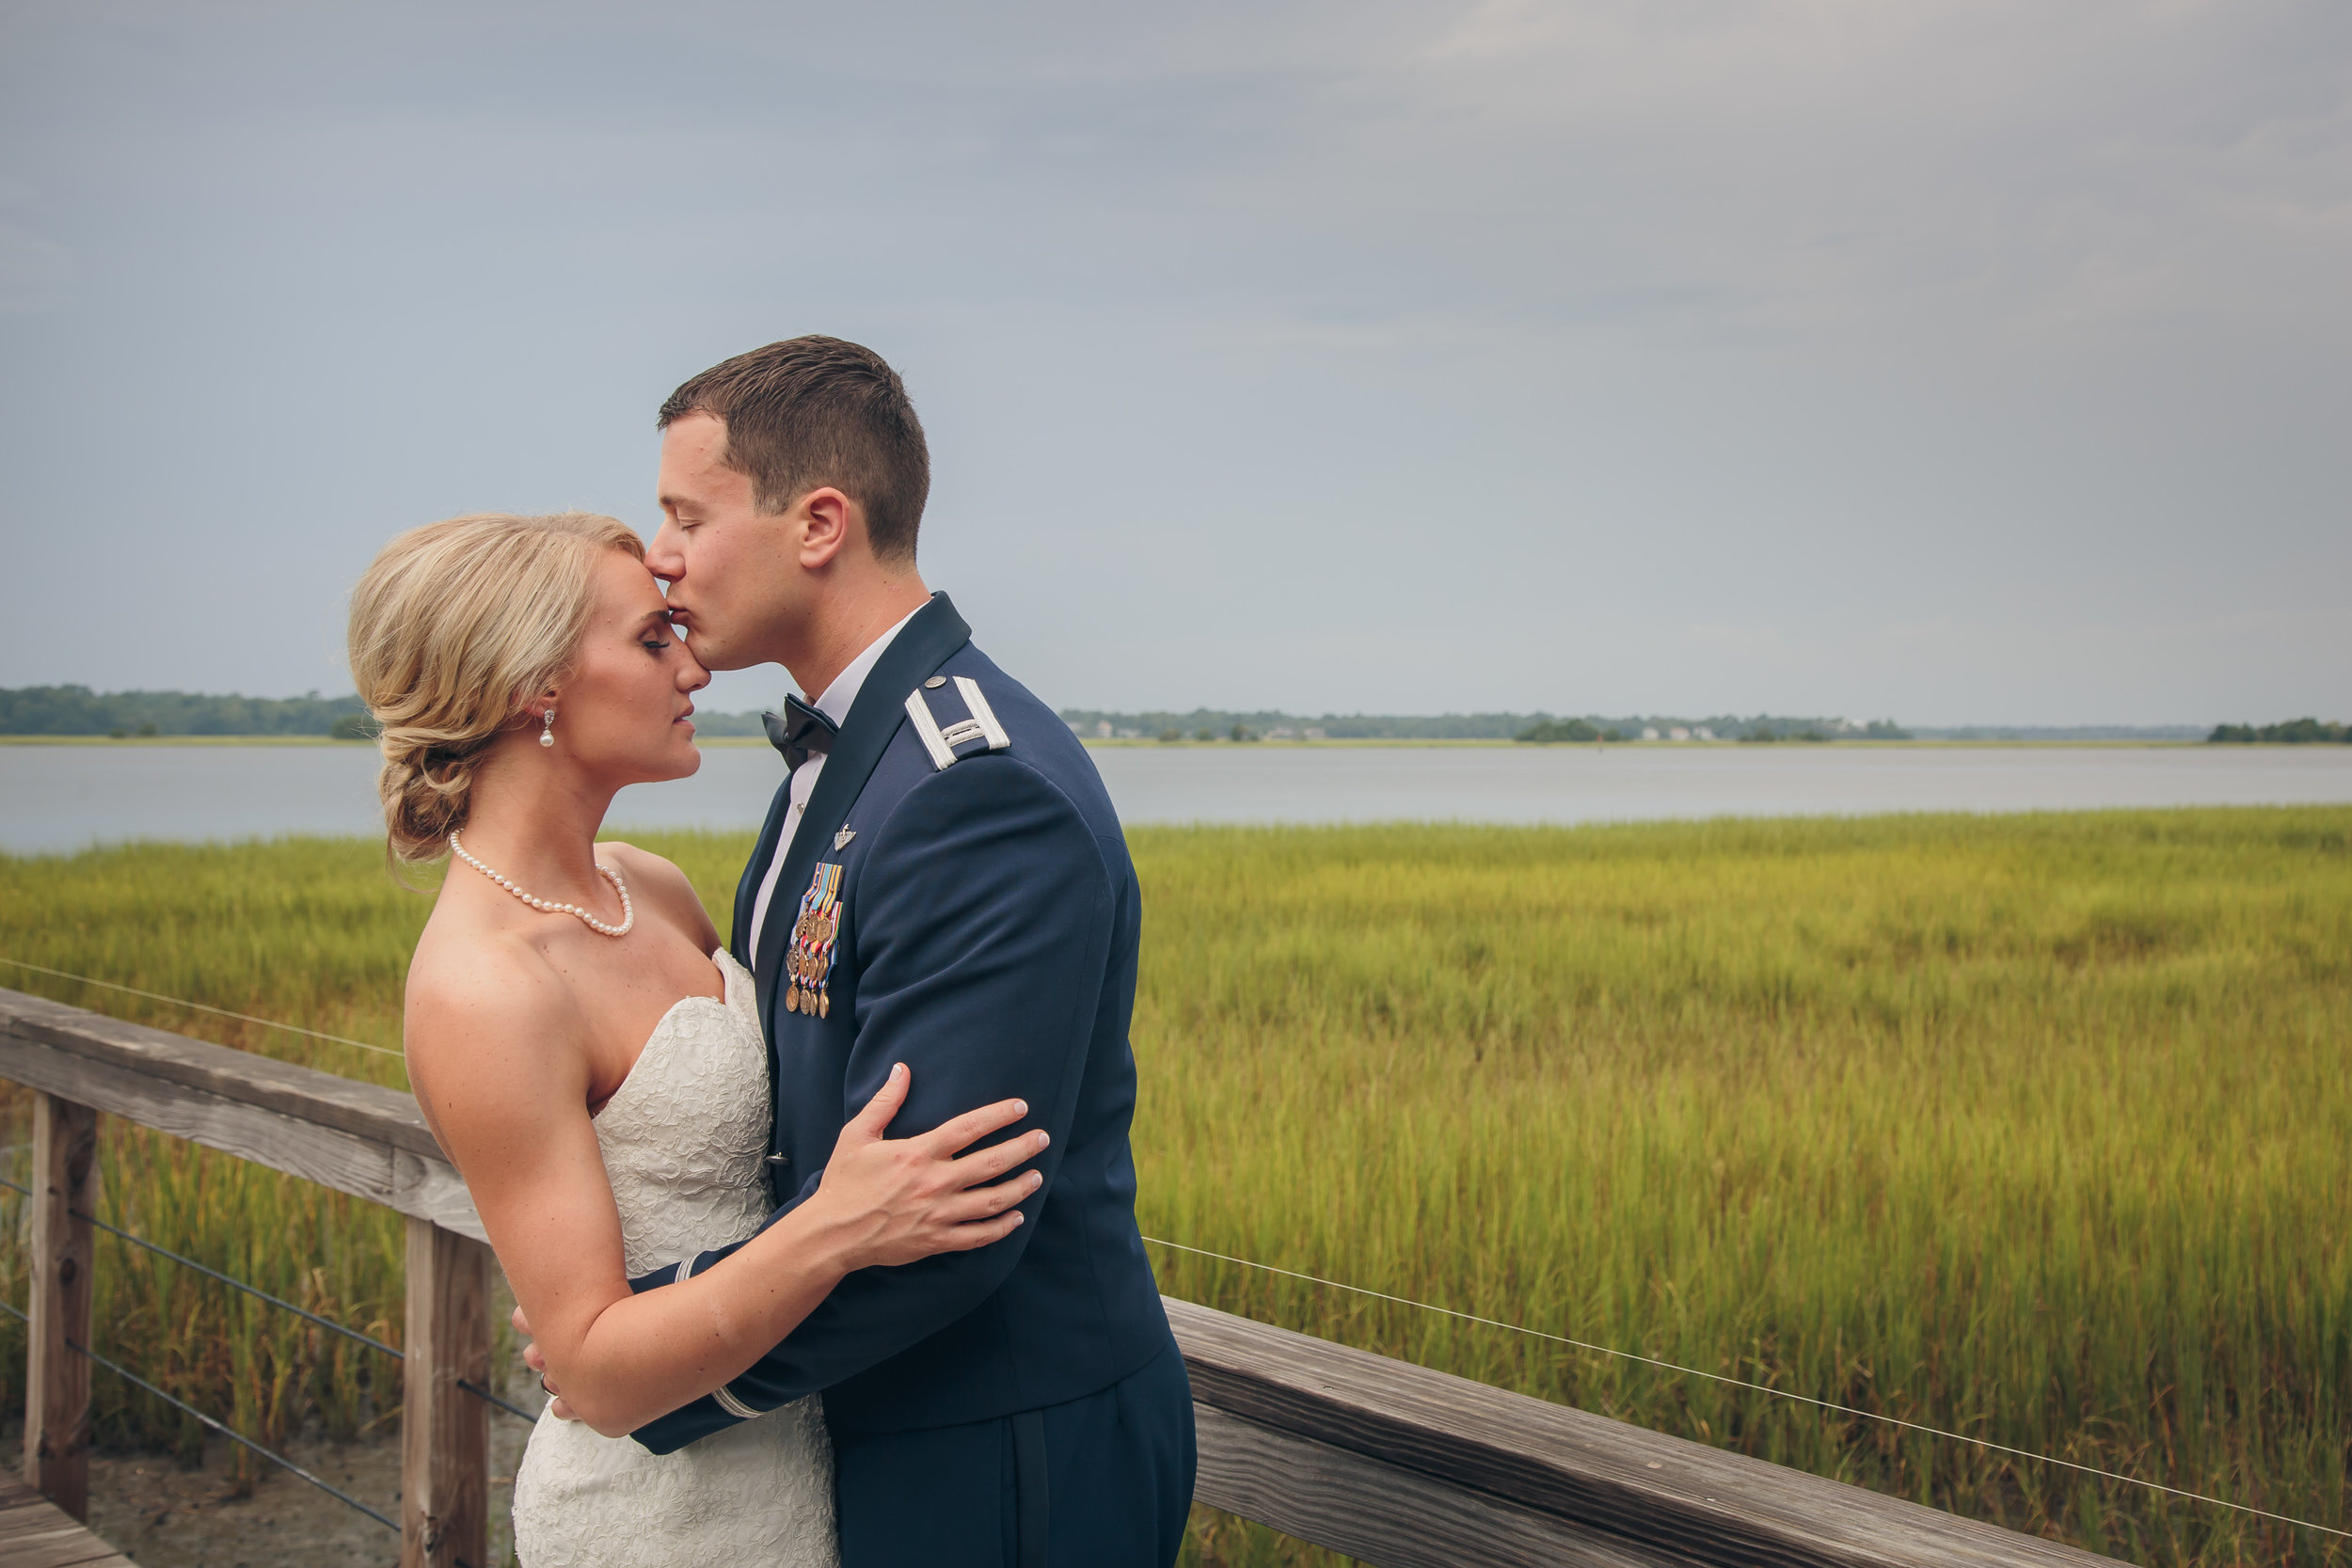 Seabrook_DiStefano_Richard_Bell_Photography_seabrook0803.jpg